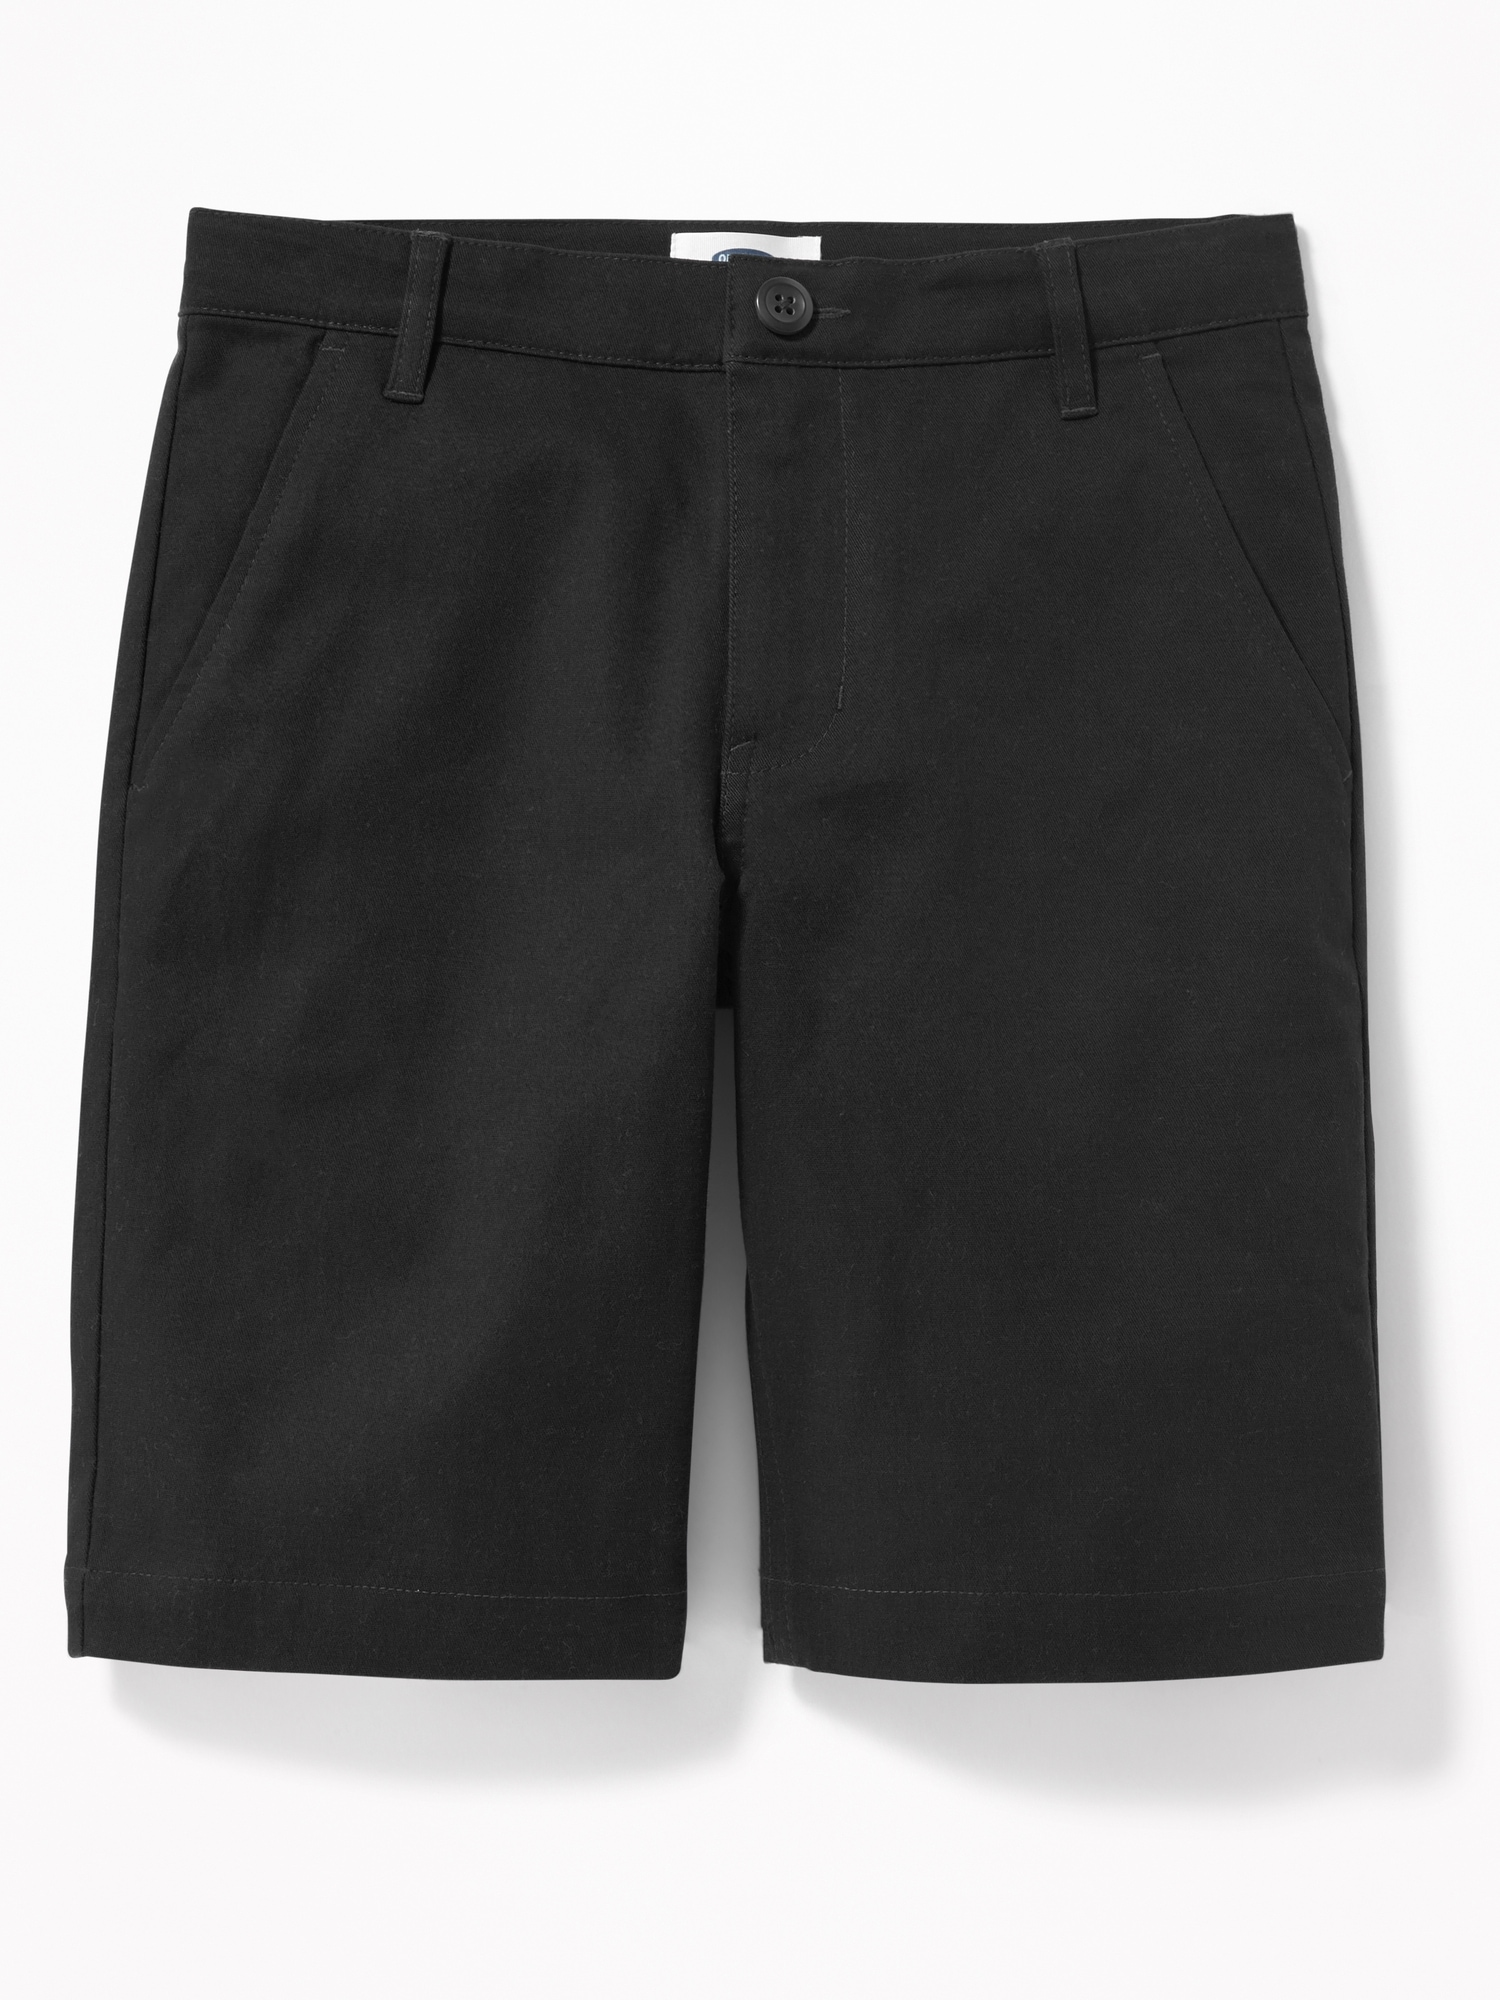 619363bf8a Built-In Flex Twill Straight Uniform Shorts for Boys | Old Navy